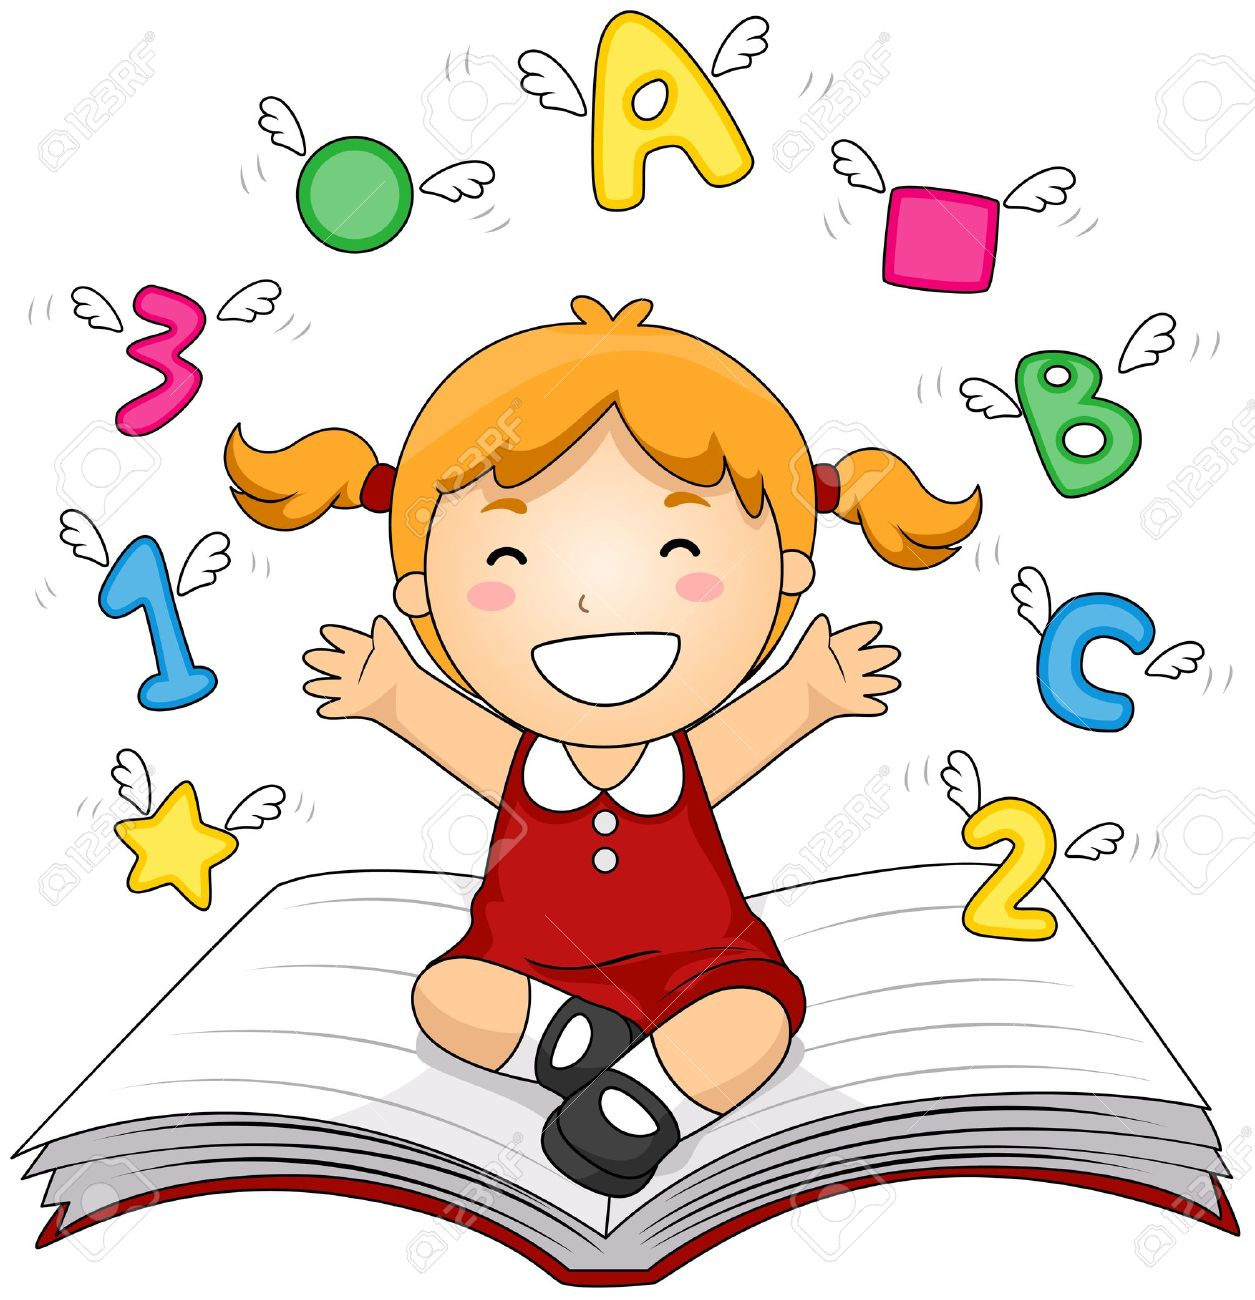 Kids clipart education. Clip art for learning